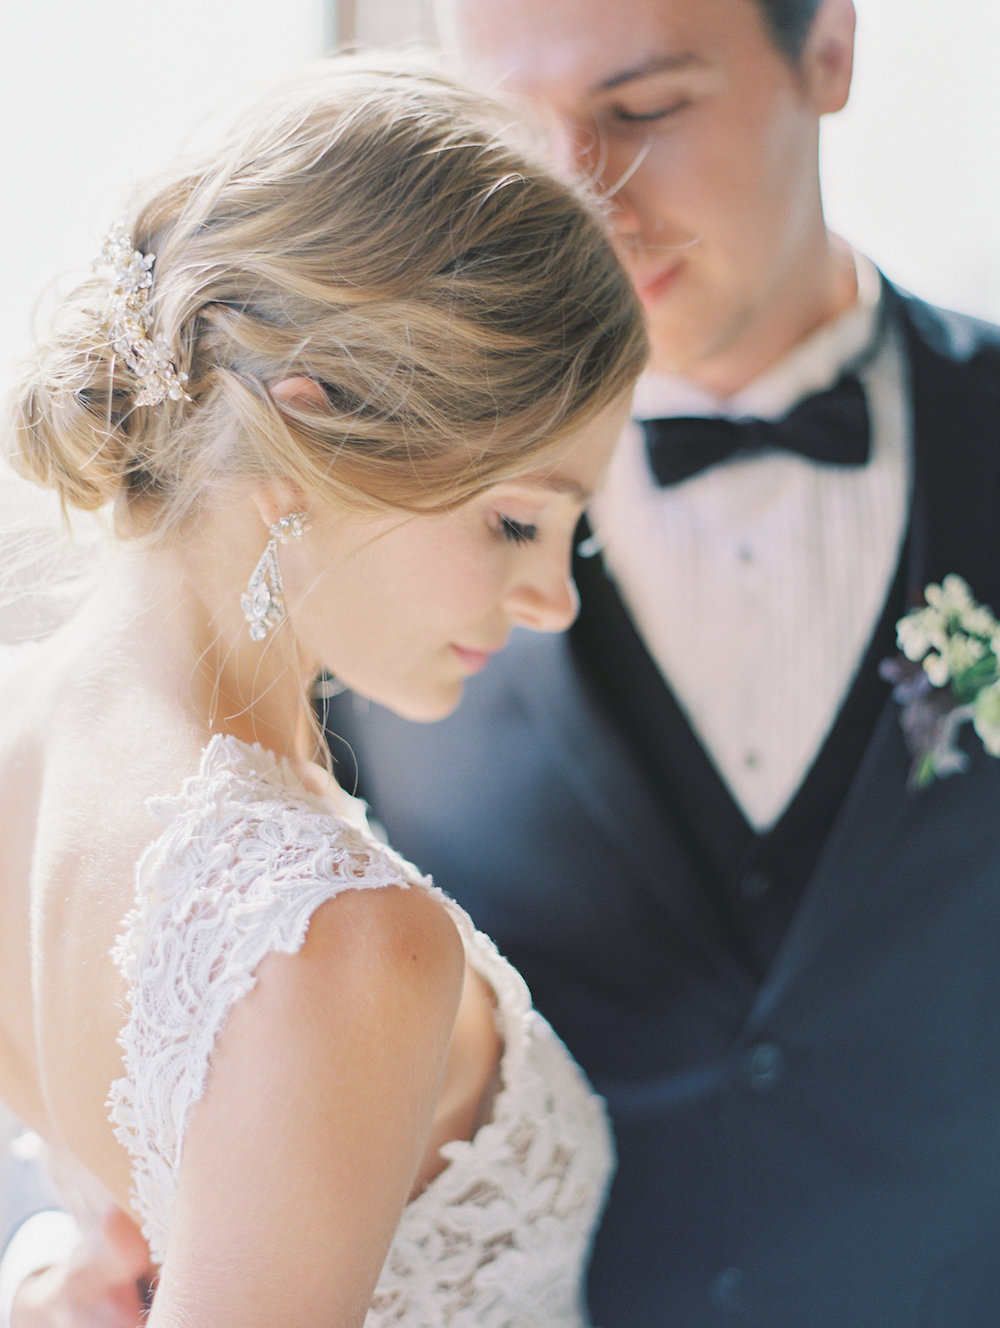 Romantic wedding portrait with headpiece and earrings